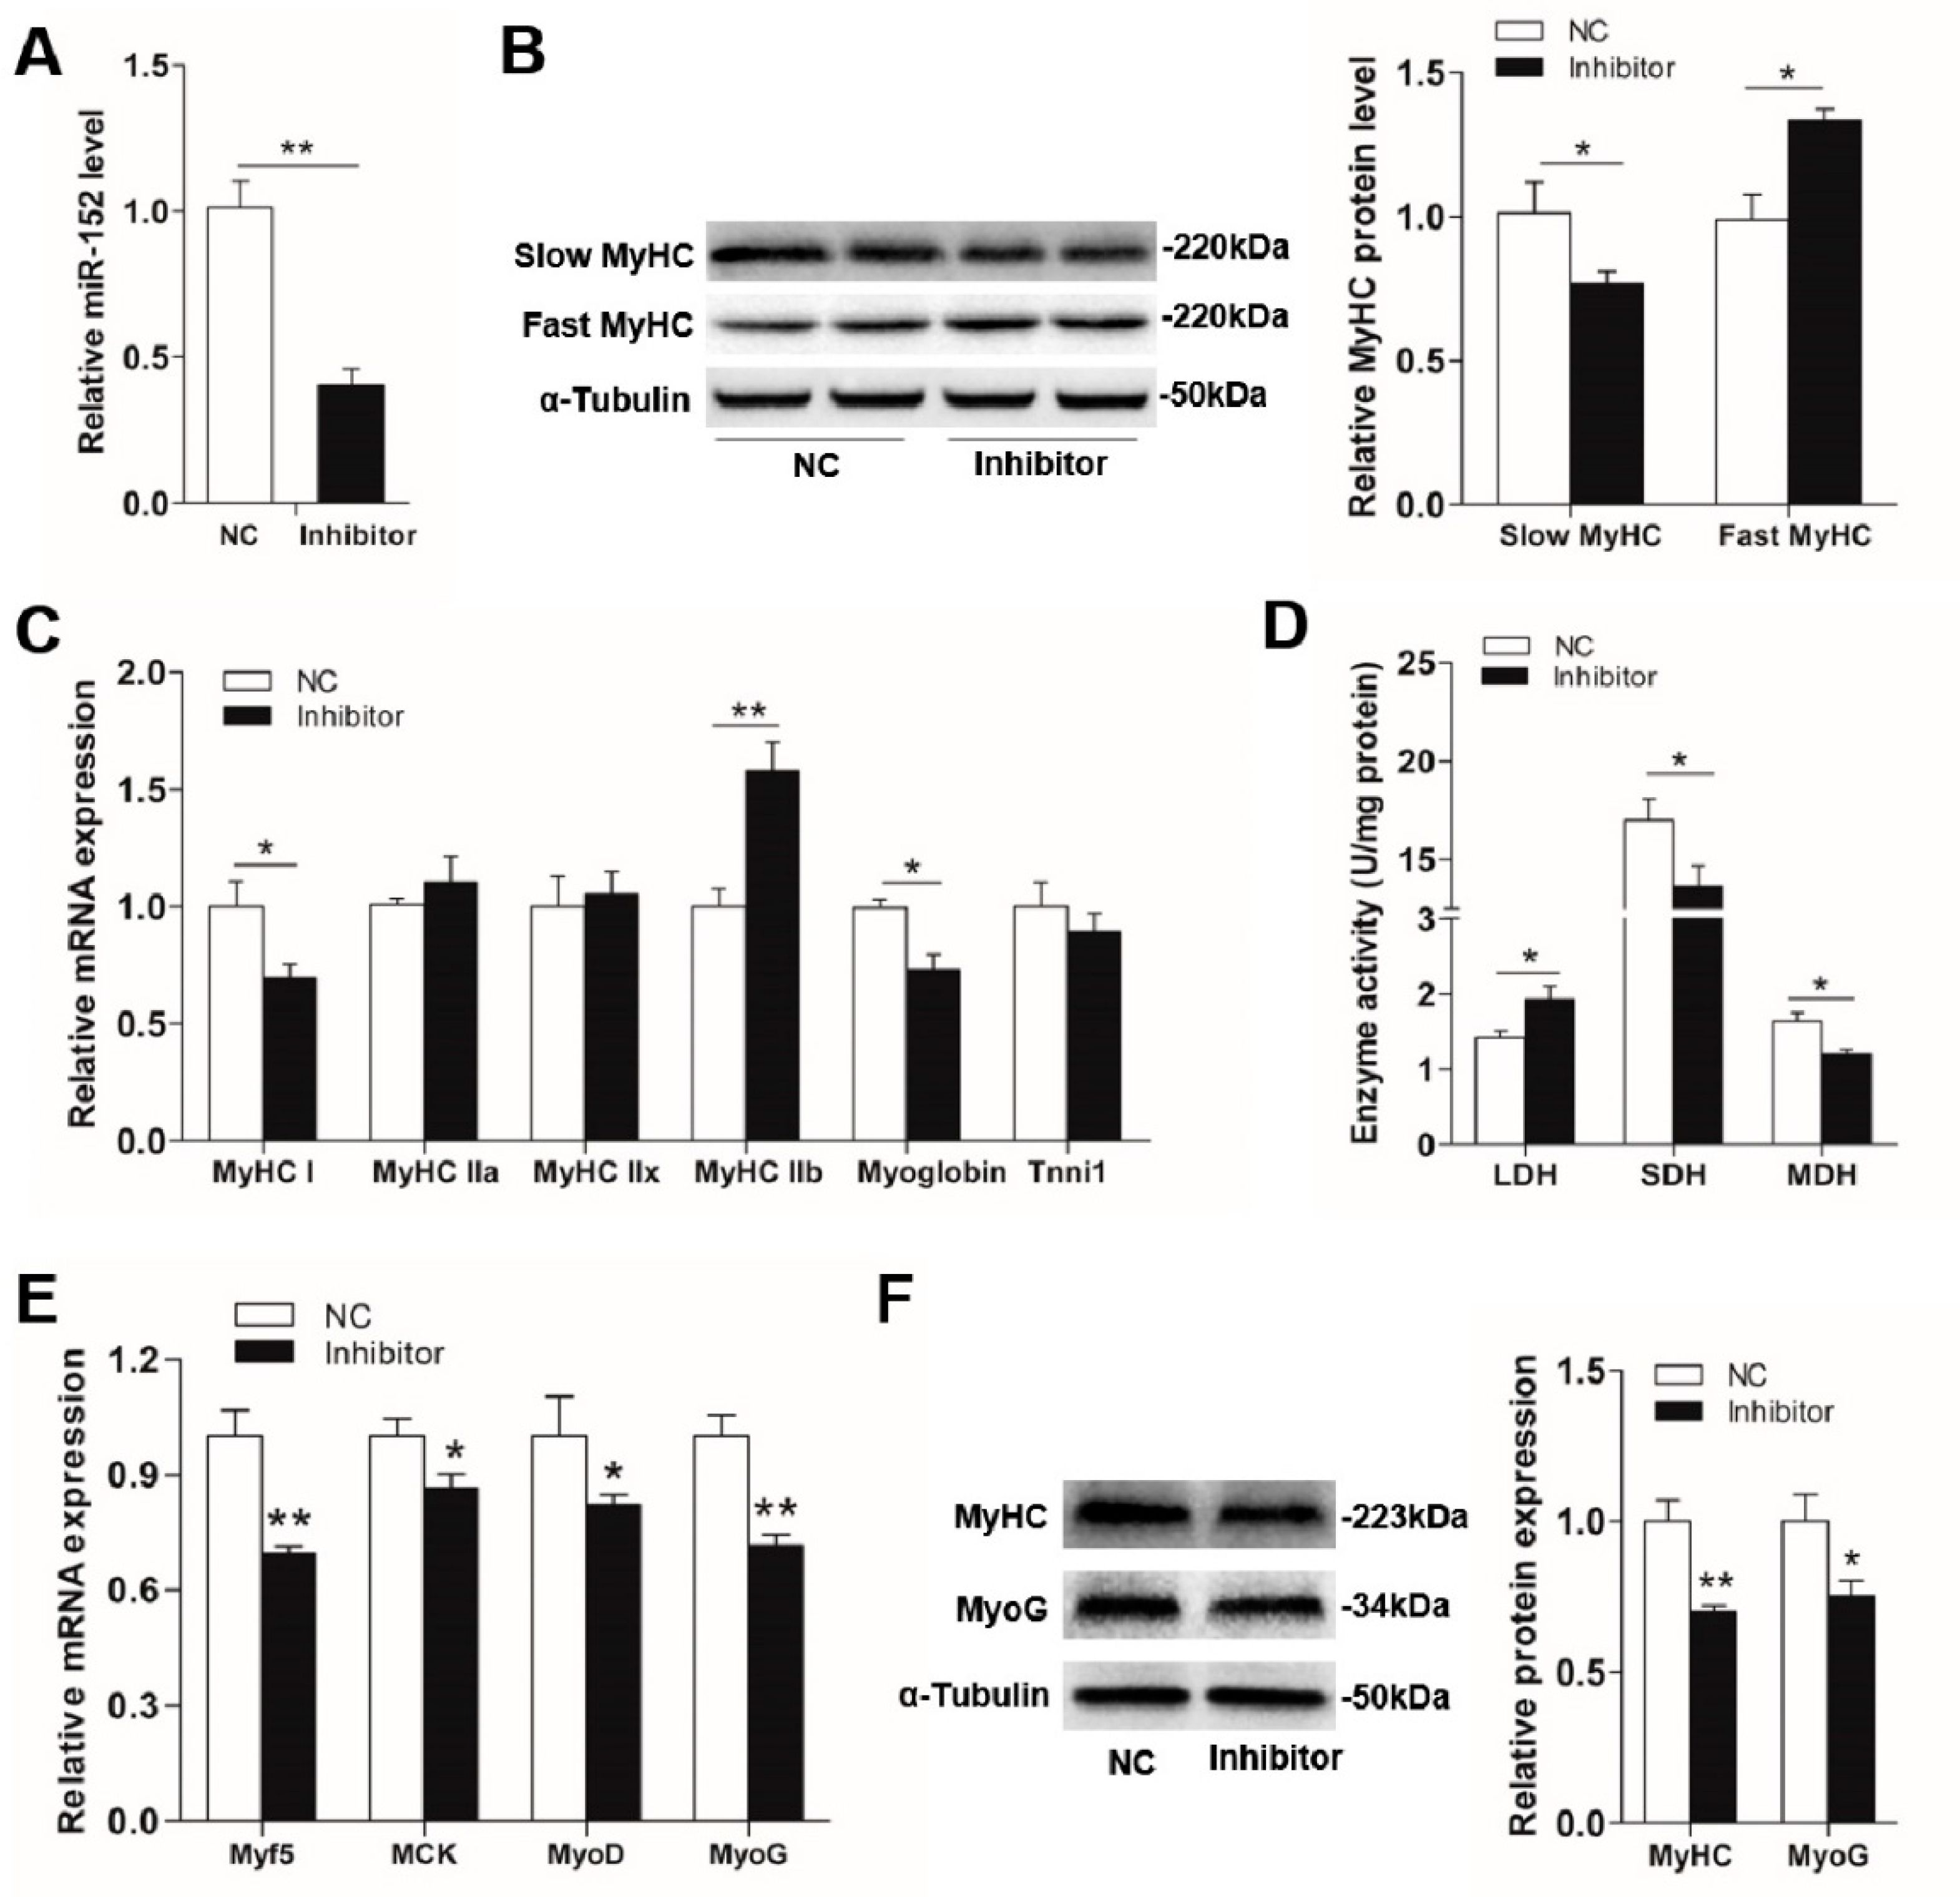 Animals   Free Full-Text   MicroRNA-152 Promotes Slow-Twitch